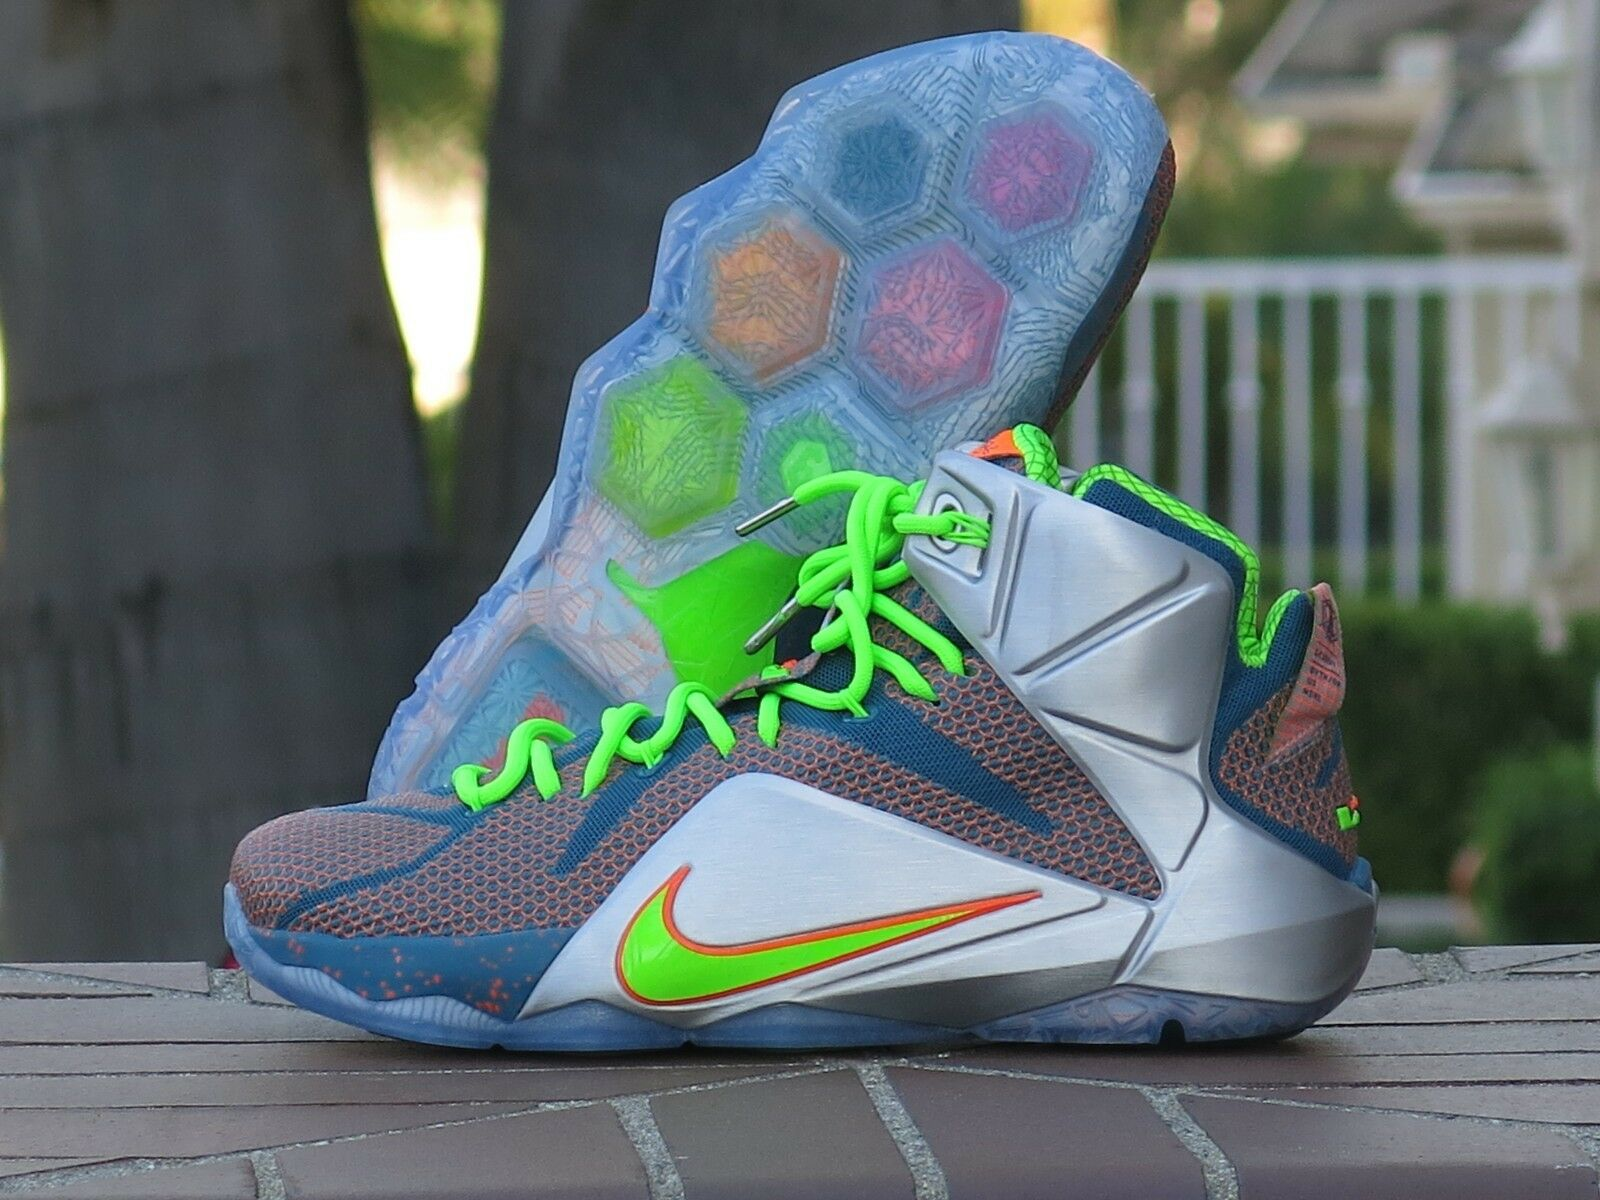 Nike Lebron XII Limited Edition Men's Basketball Sneakers 705410-430 SZ 10